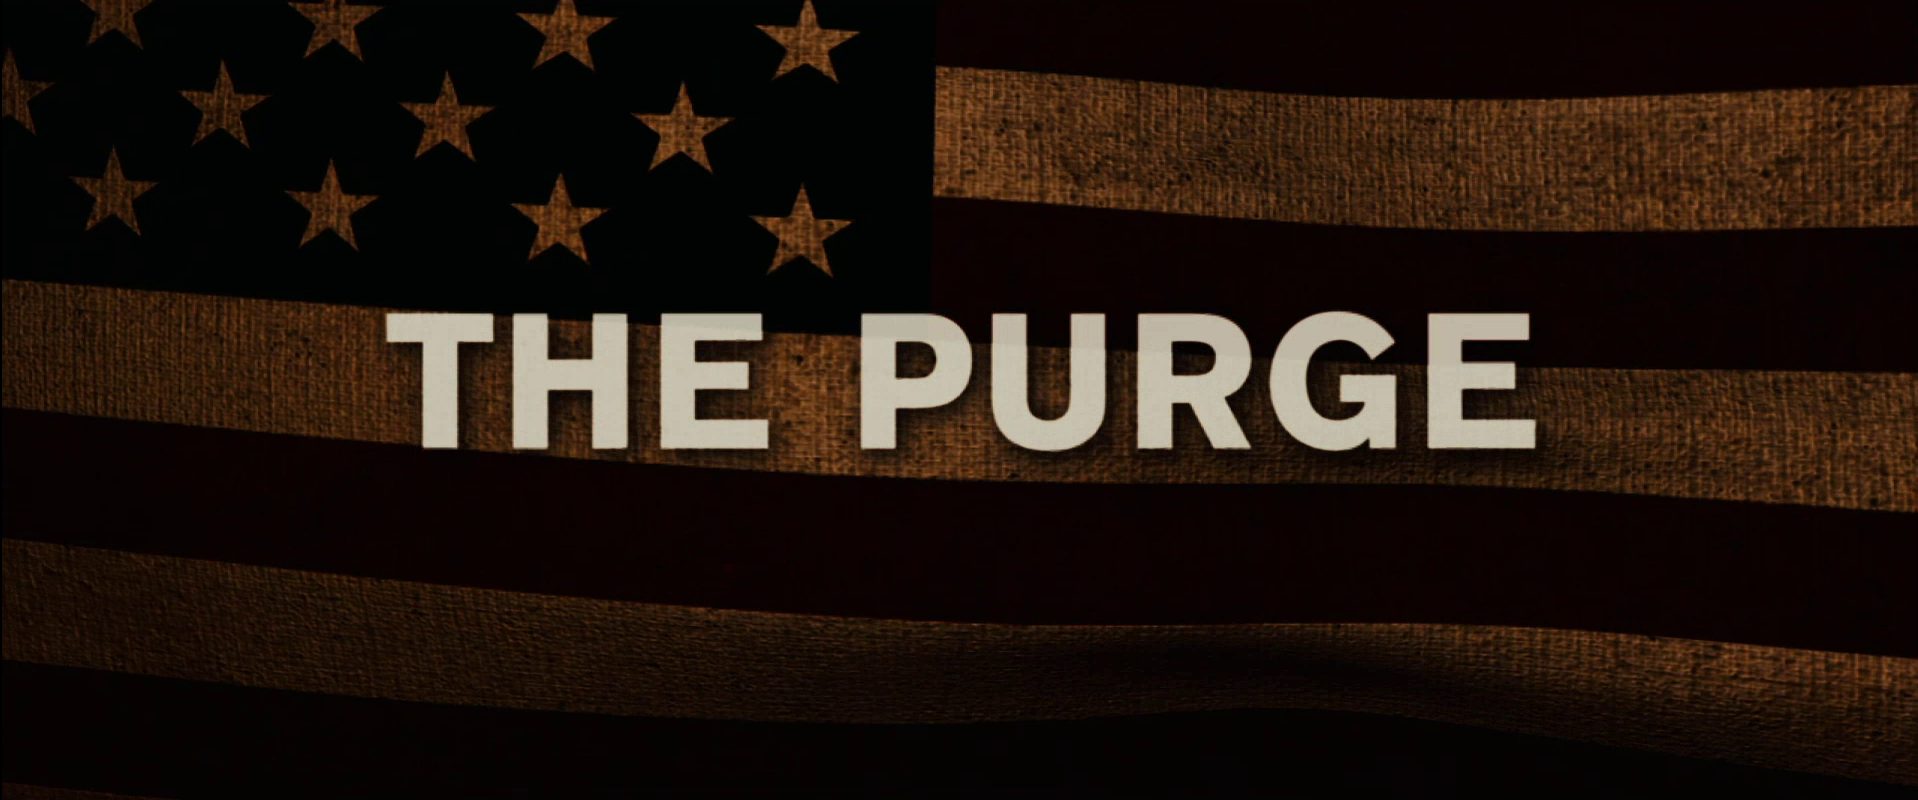 The_Purge_(2013)_James_DeMonaco